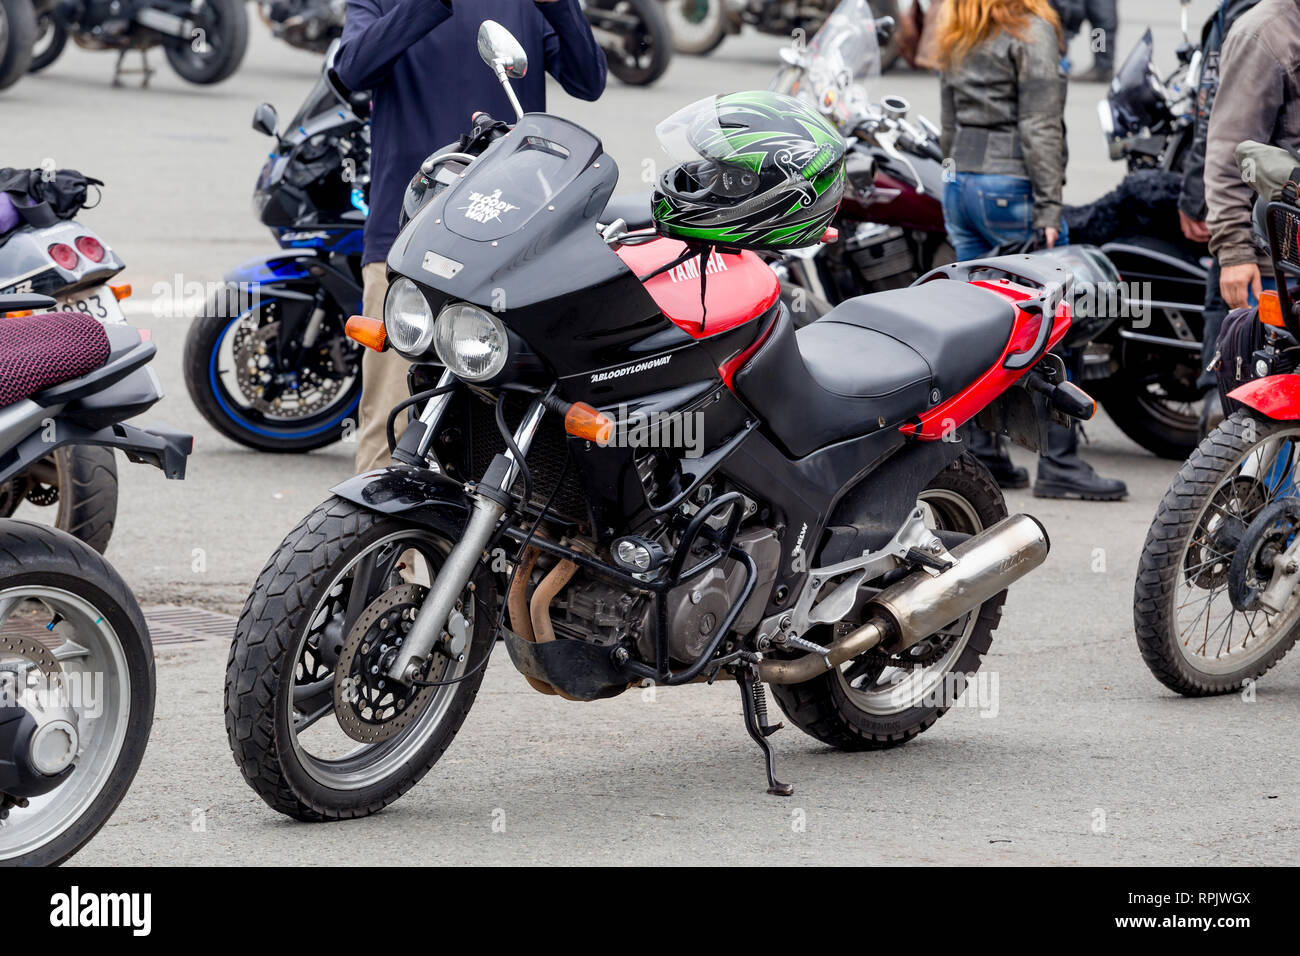 Russia, Vladivostok, 10/06/2018. Yamaha sport bike (motorcycle) on bike show in the city downtown. Sport bikes, active lifestyle, motorbike as hobby. - Stock Image